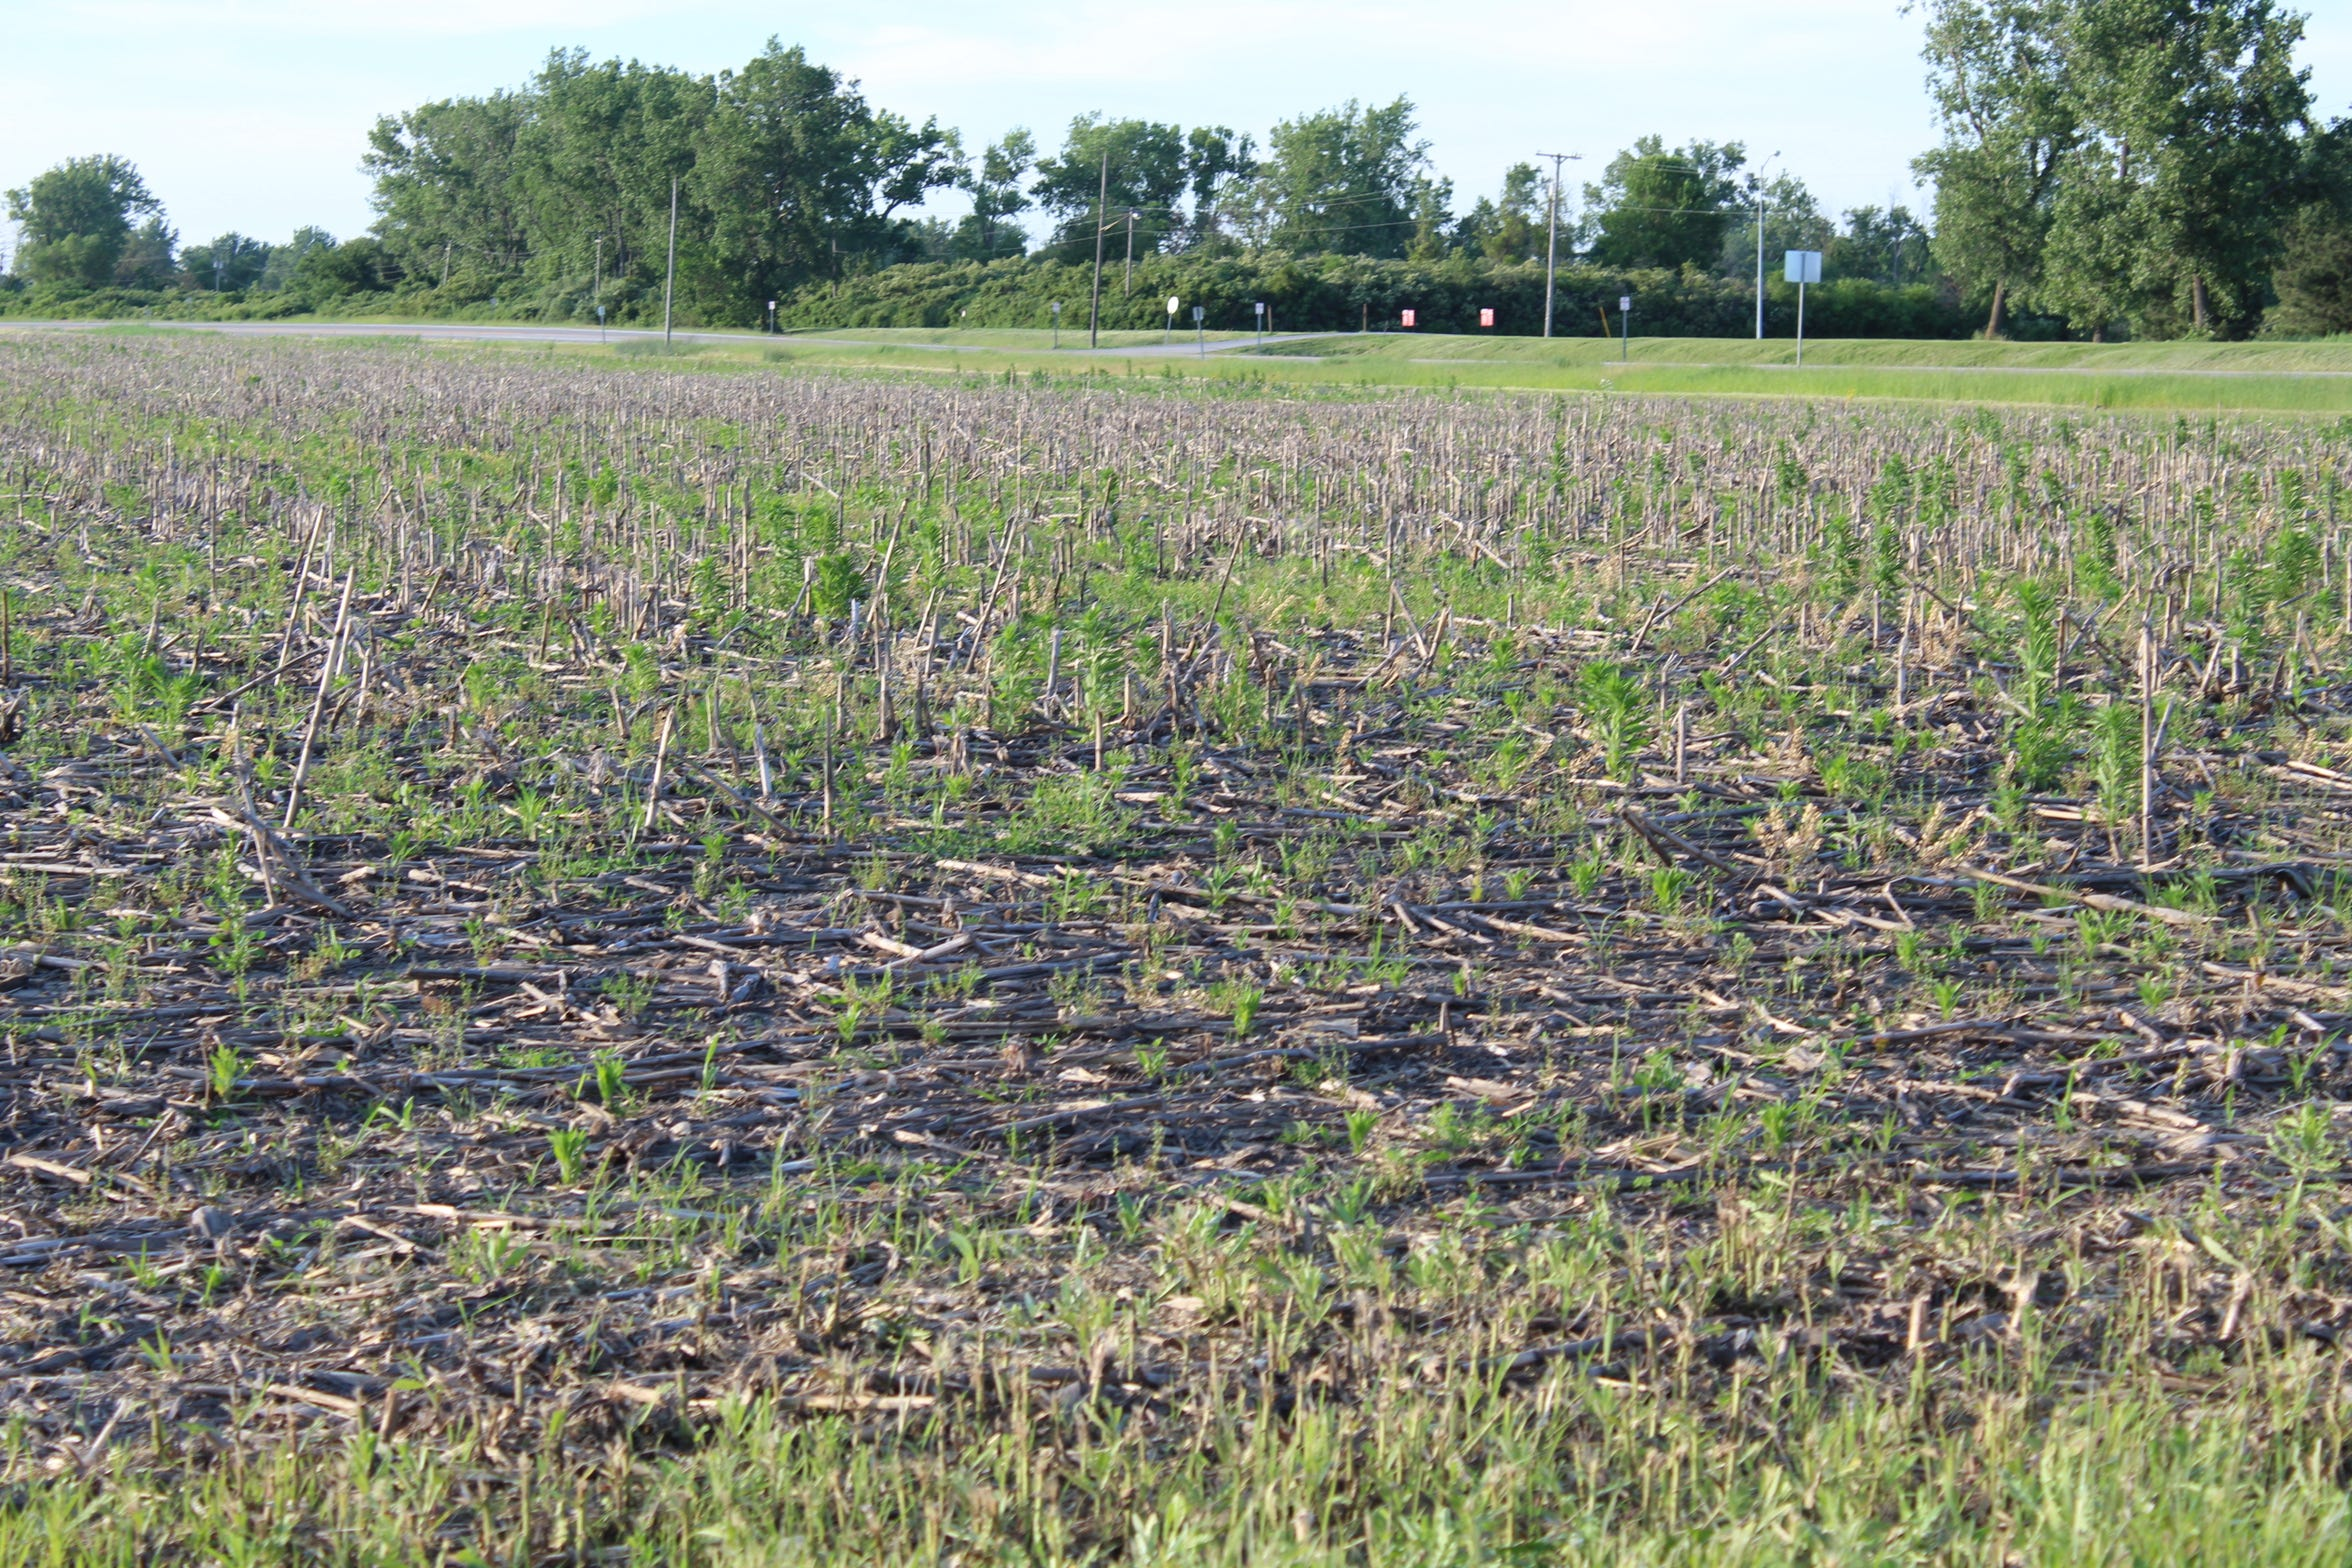 A combination of heavy rains, record high water levels on Lake Erie, flooding and extreme cold during this winter has resulted in a disaster for Ottawa County farmers in 2019. The county's board of commissioners wrote a letter to U.S. Department of Agriculture Secretary Sonny Perdue detailing the damage to the county's crops.